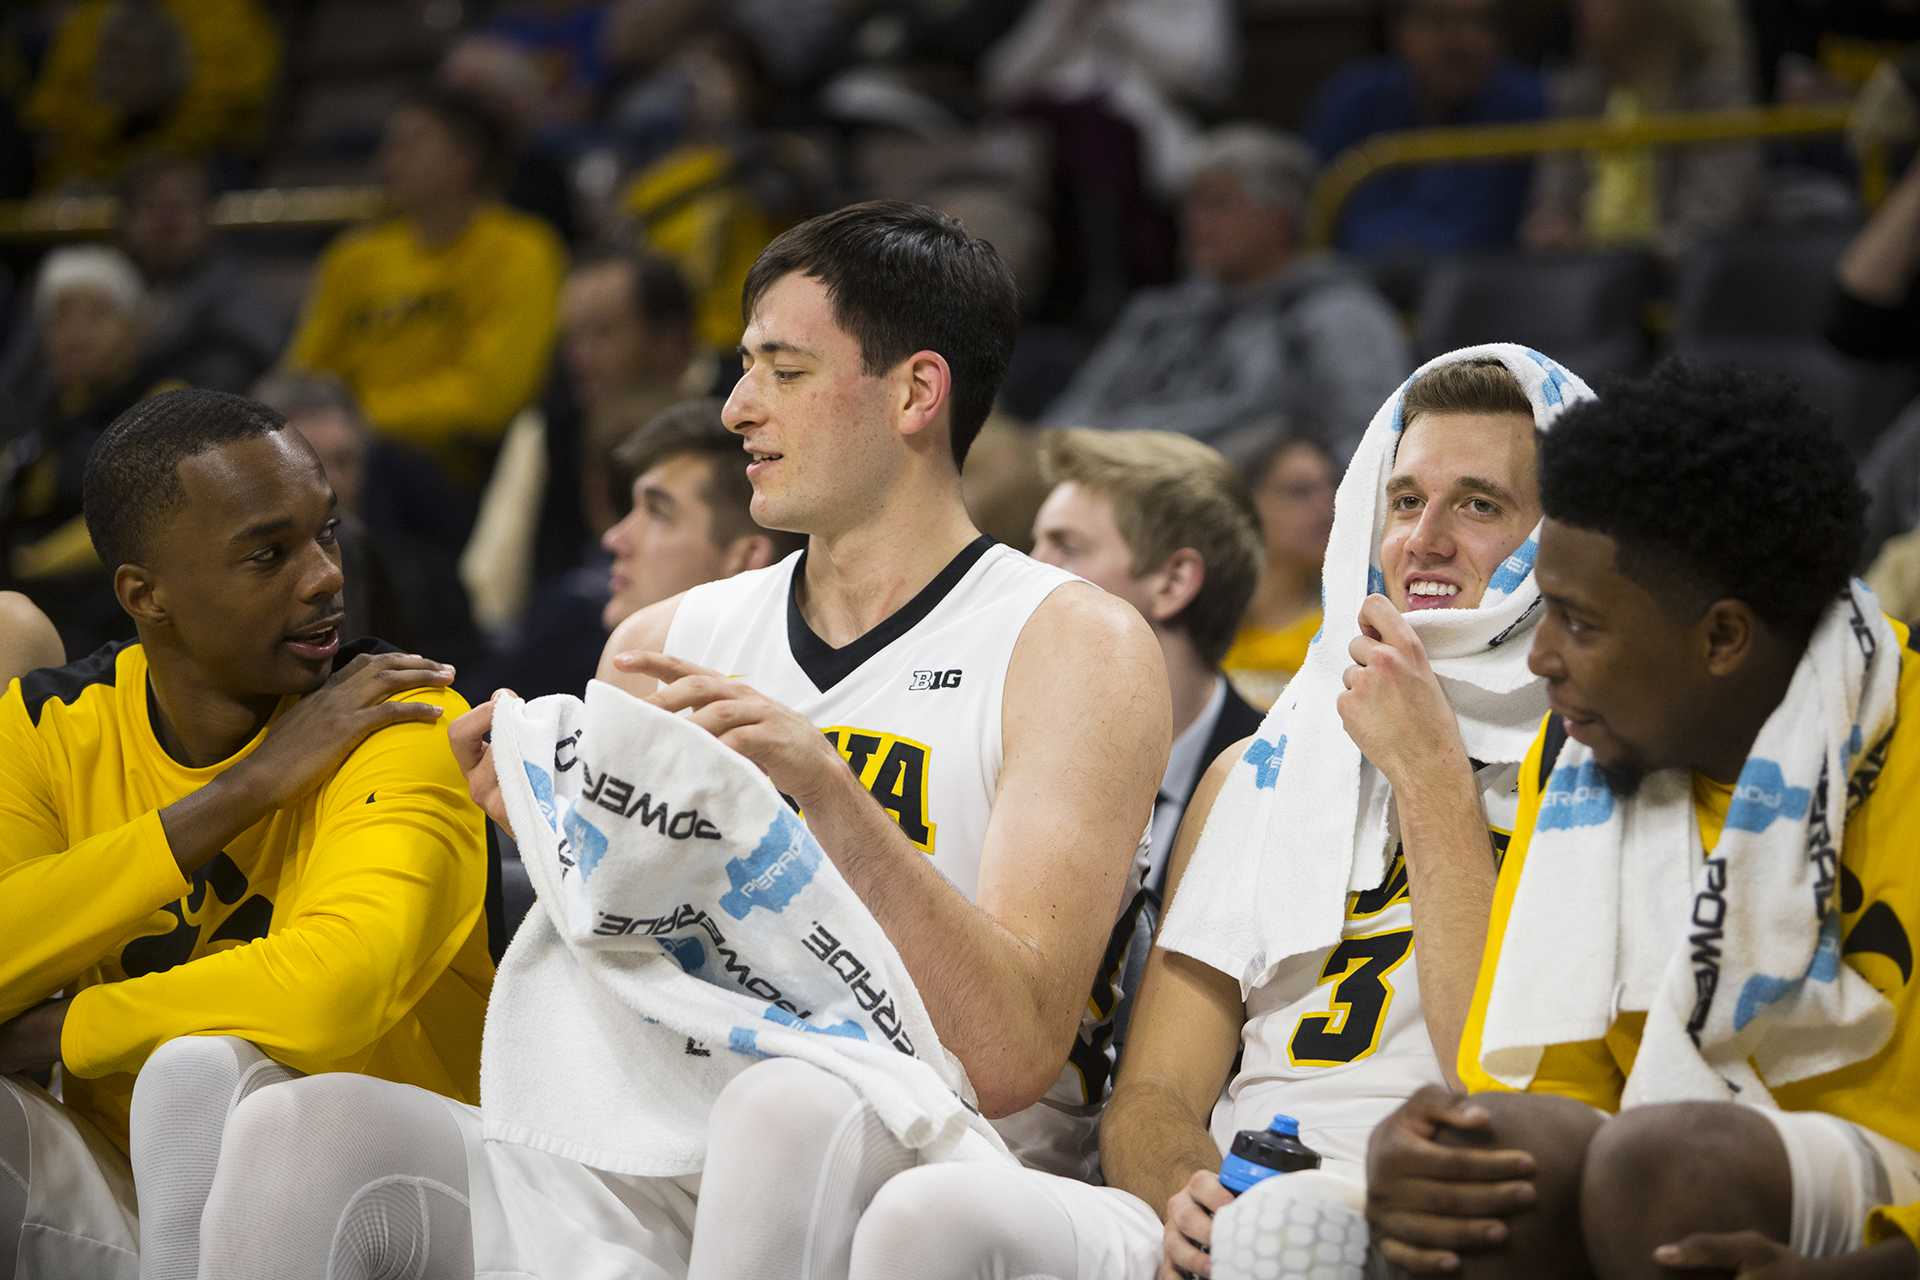 Iowa's Maishe Dailey, Ryan Kriener, Jordan Bohannon, and Isaiah Moss chat on the bench during a men's basketball exhibition game between Iowan and William Jewell College in Carver-Hawkeye Arena on Friday, Oct. 27, 2017. The Hawkeyes defeated the Cardinals, 105-81. (Joseph Cress/The Daily Iowan)